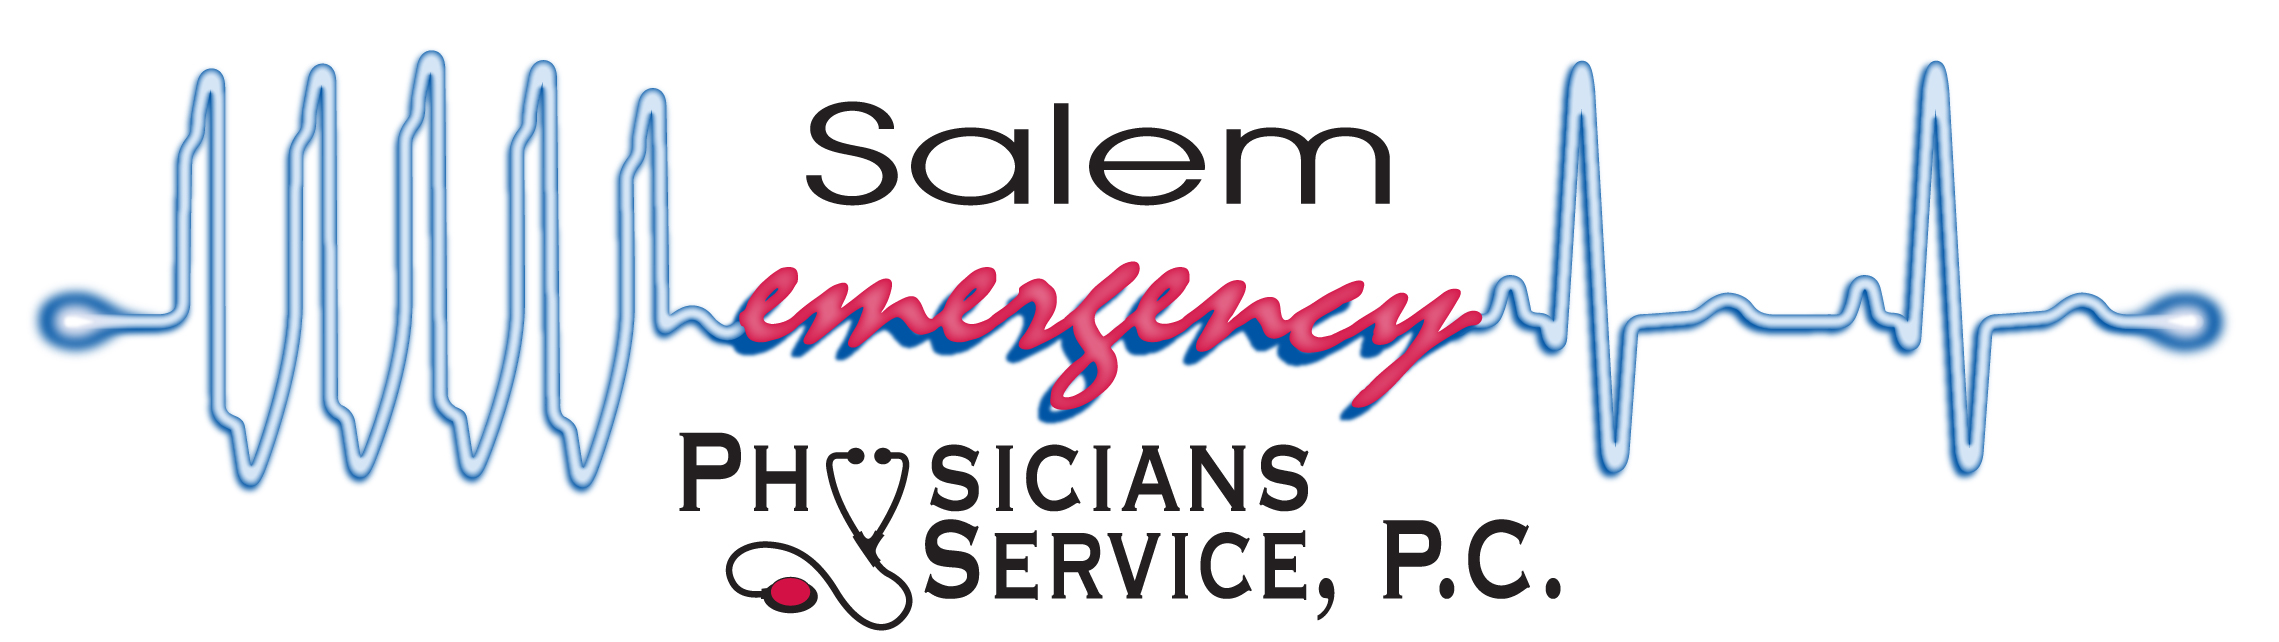 Salem Emergency Physicians Service